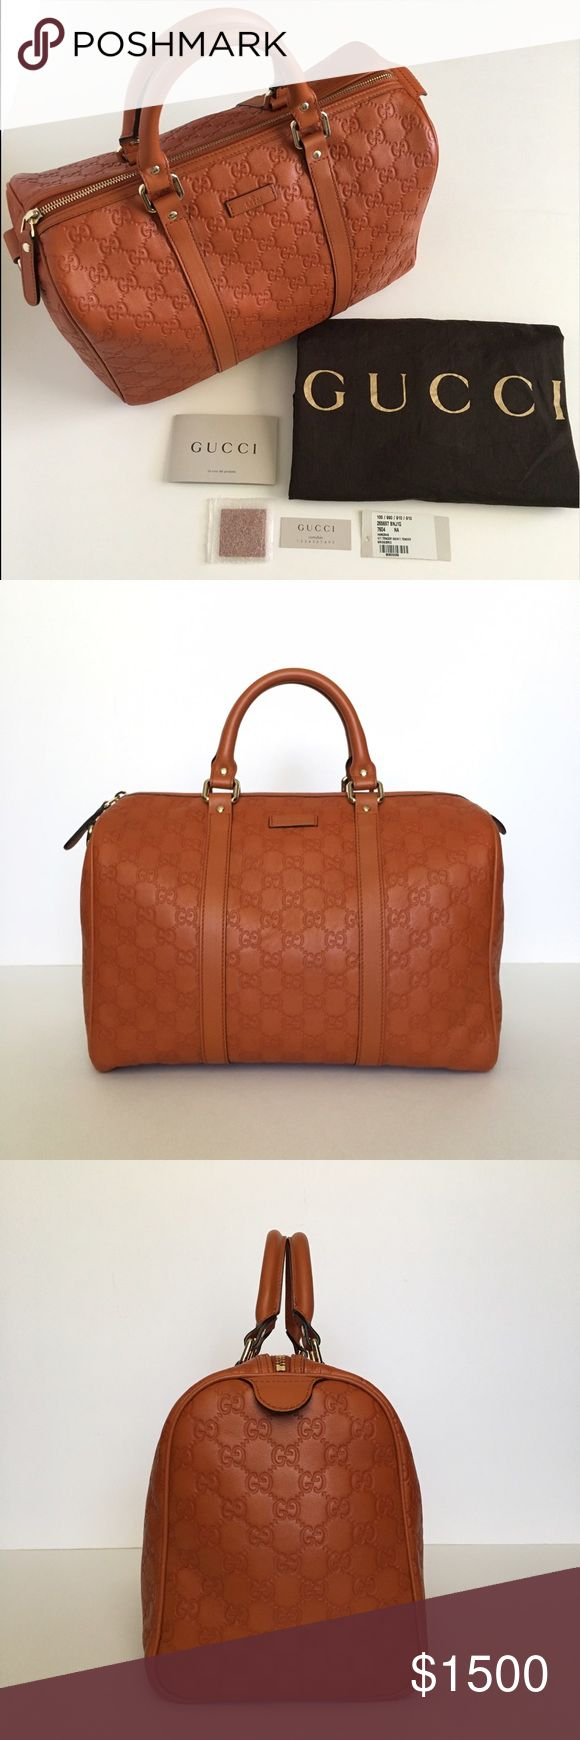 Gucci Guccissima Leather Boston Medium Handbag *EXCELLENT CONDITION, good as new. No signs of wear or tear. Gucci GG Guccissima Leather Boston Medium Handbag.  Color: Brick Orange Size:   Accepting reasonable offers. Will sell for less on ♏️erc. Gucci Bags